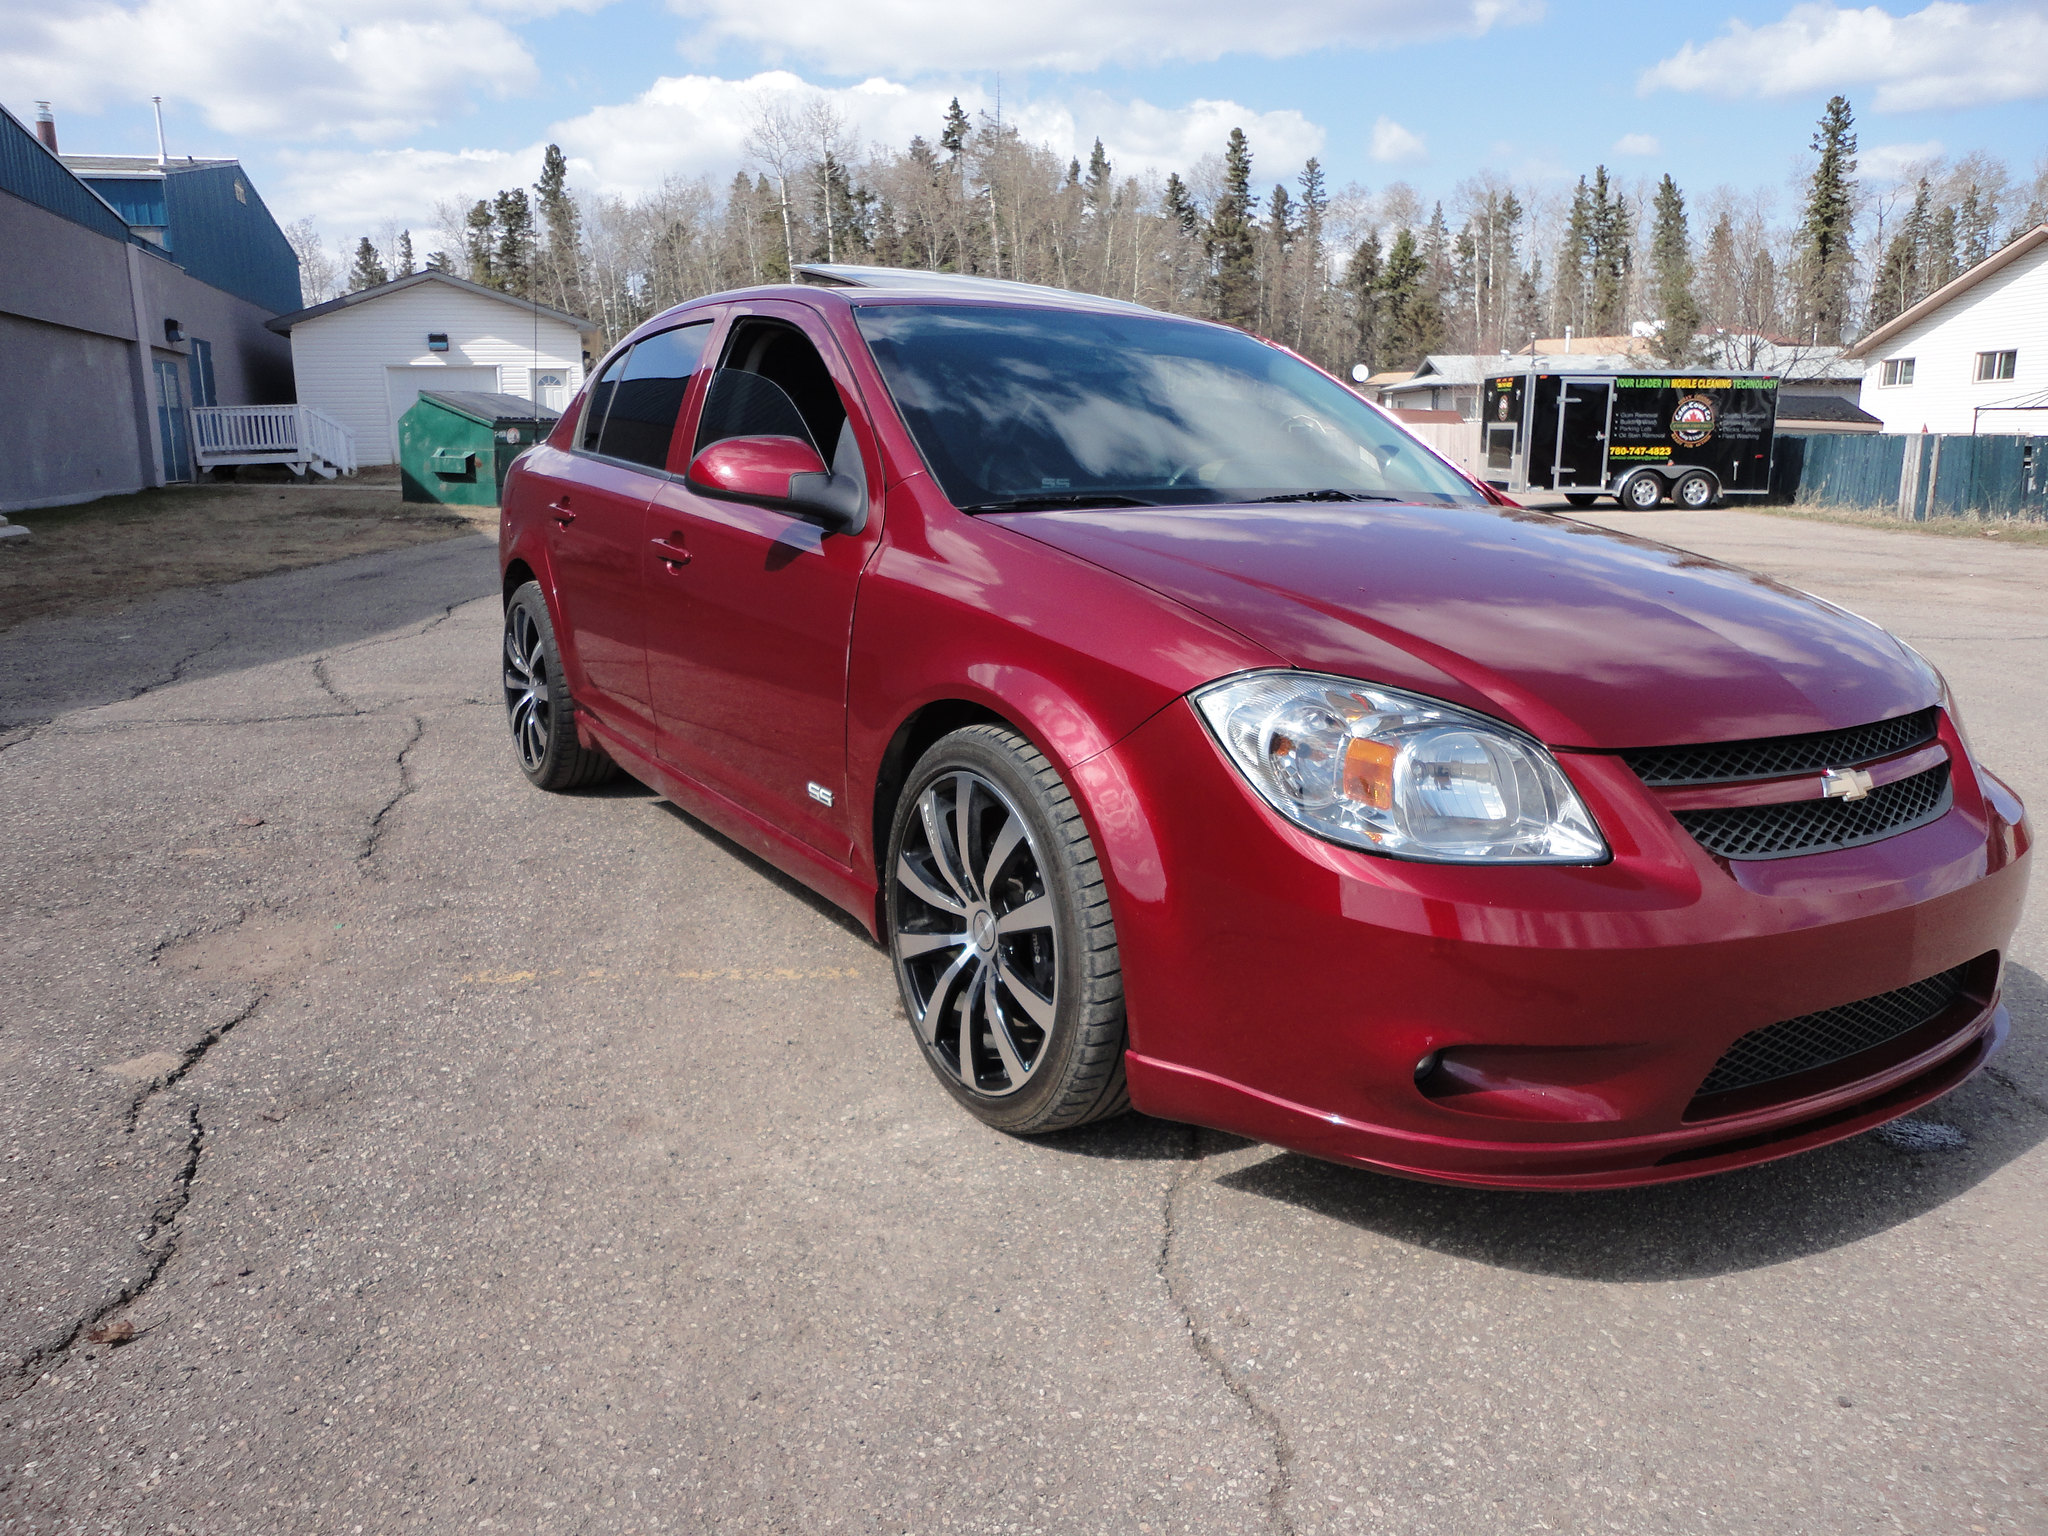 for sale 2009 cobalt ss tc sedan cobalt ss network. Black Bedroom Furniture Sets. Home Design Ideas